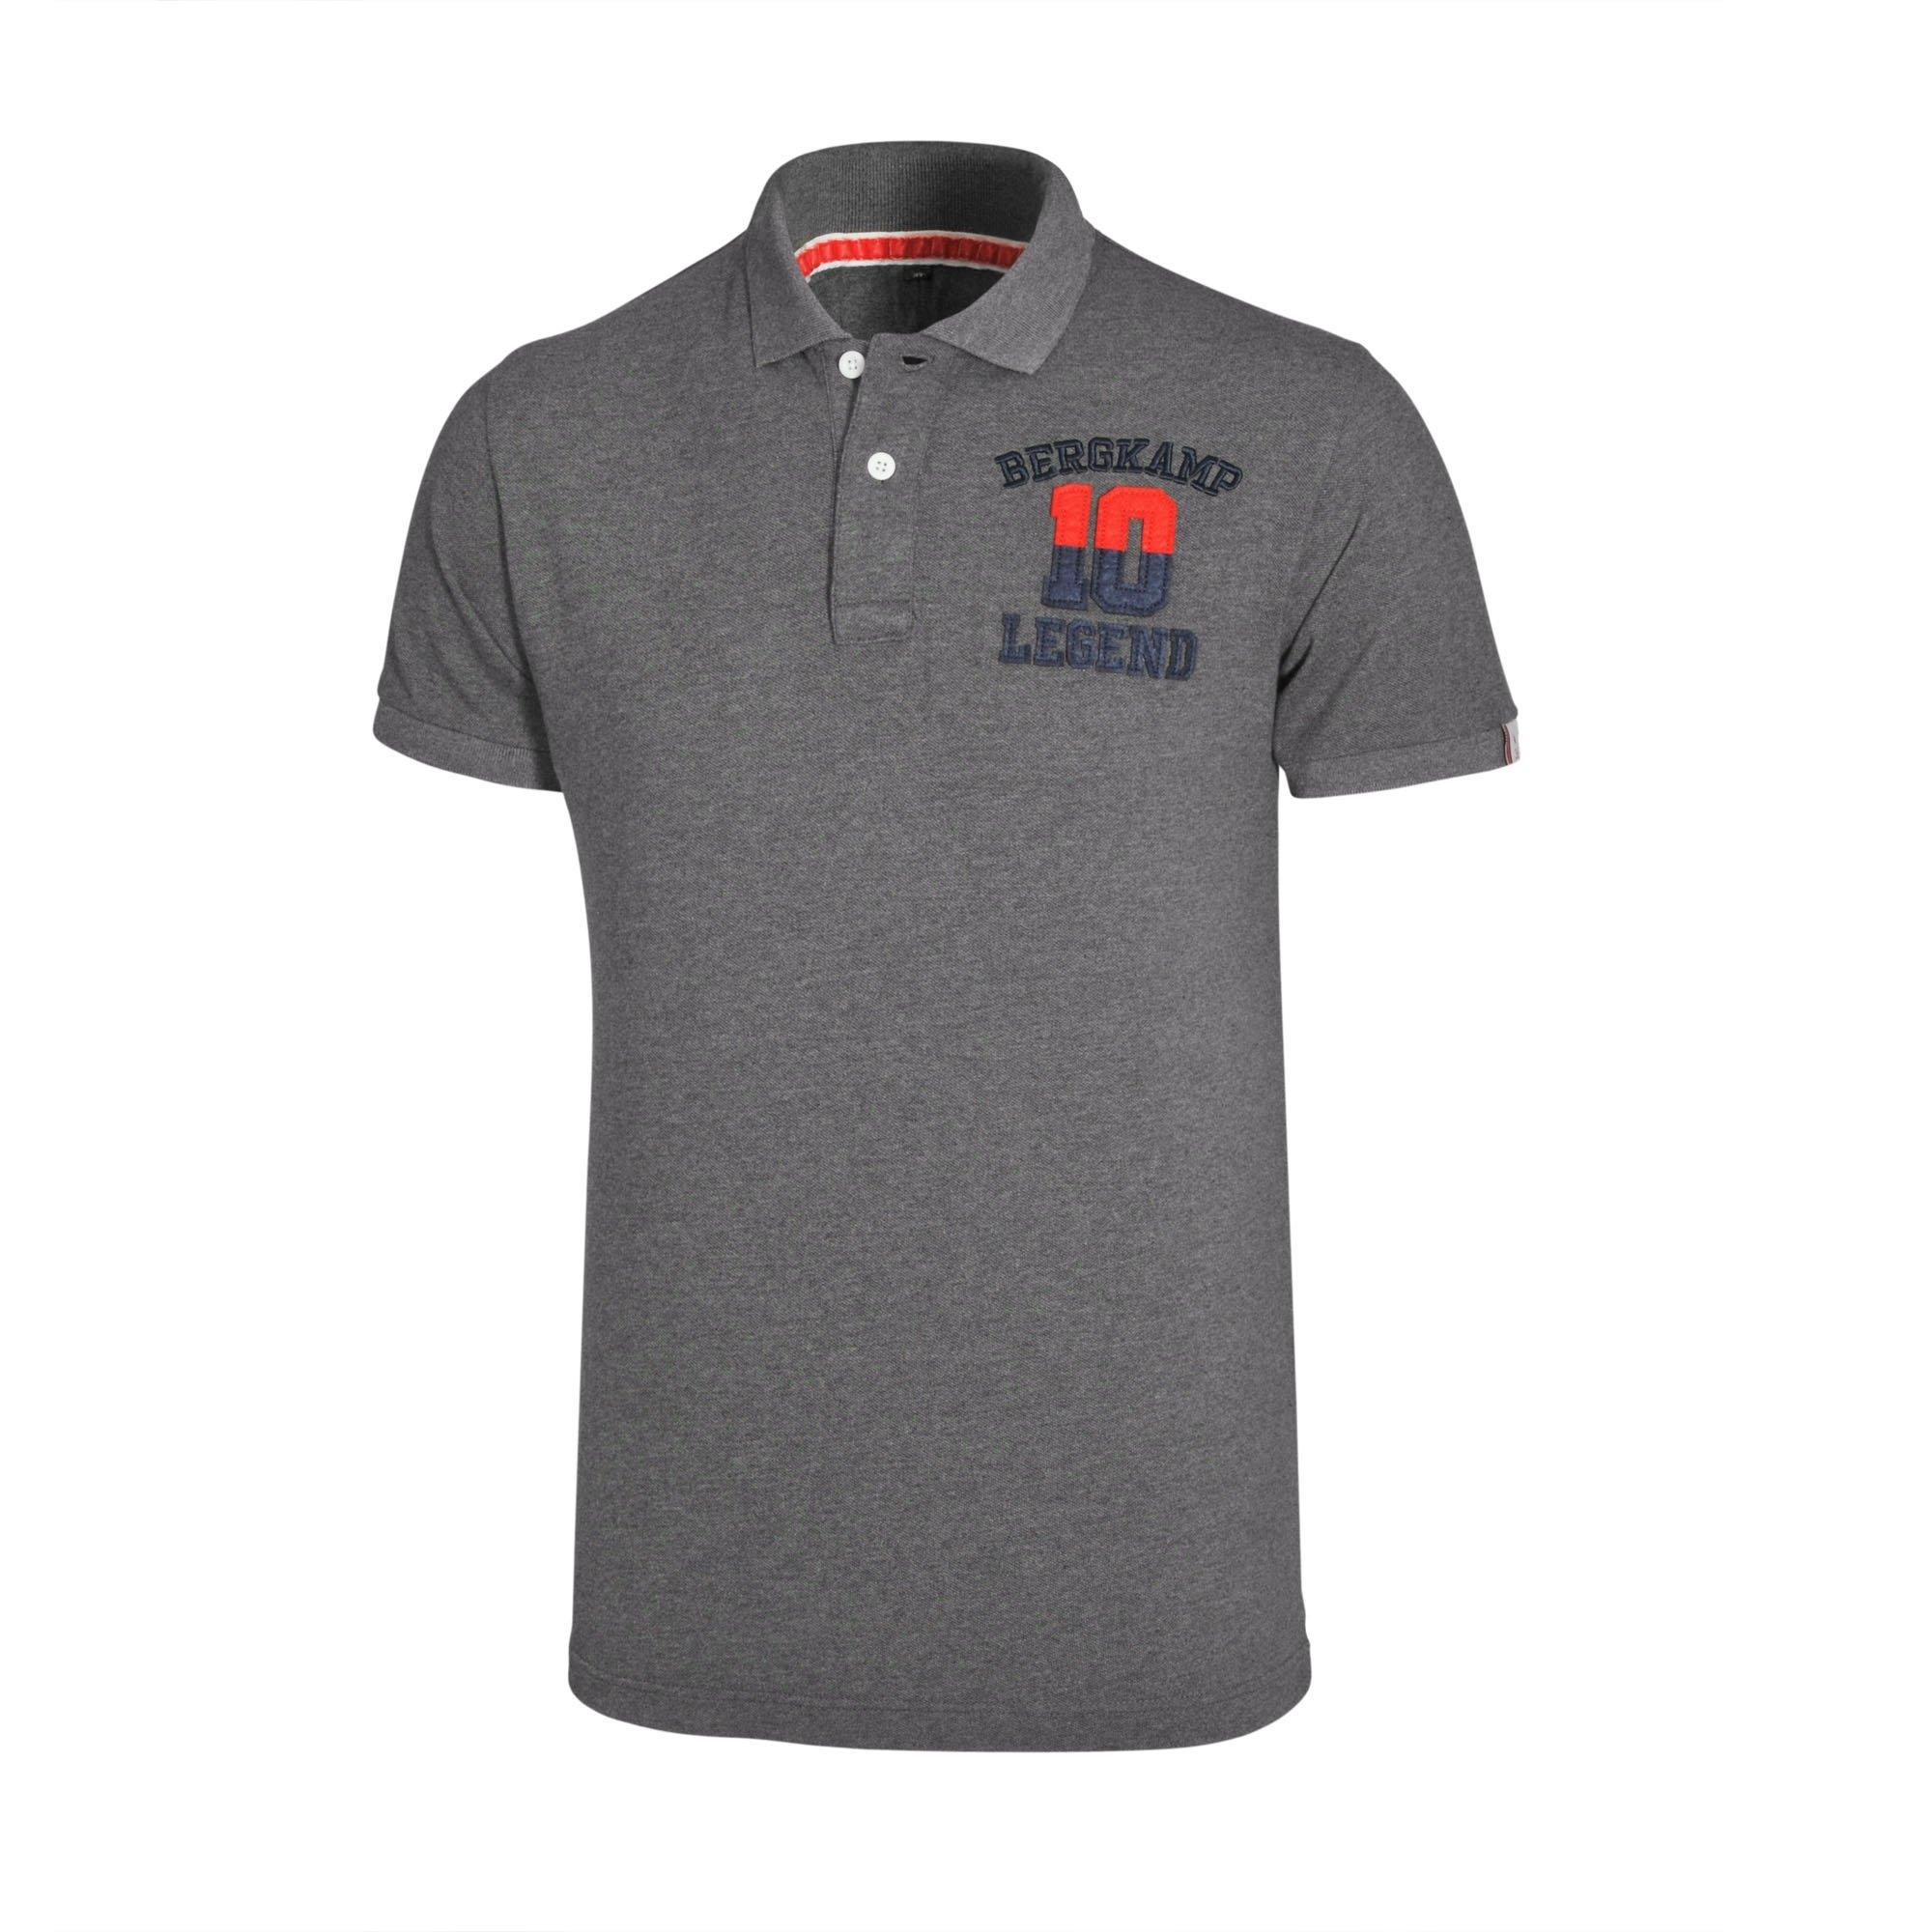 Arsenal Mens Crest Polo Shirt. �25.00. Add to basket. QuickView � Arsenal  Legend Bergkamp Polo Shirt ...